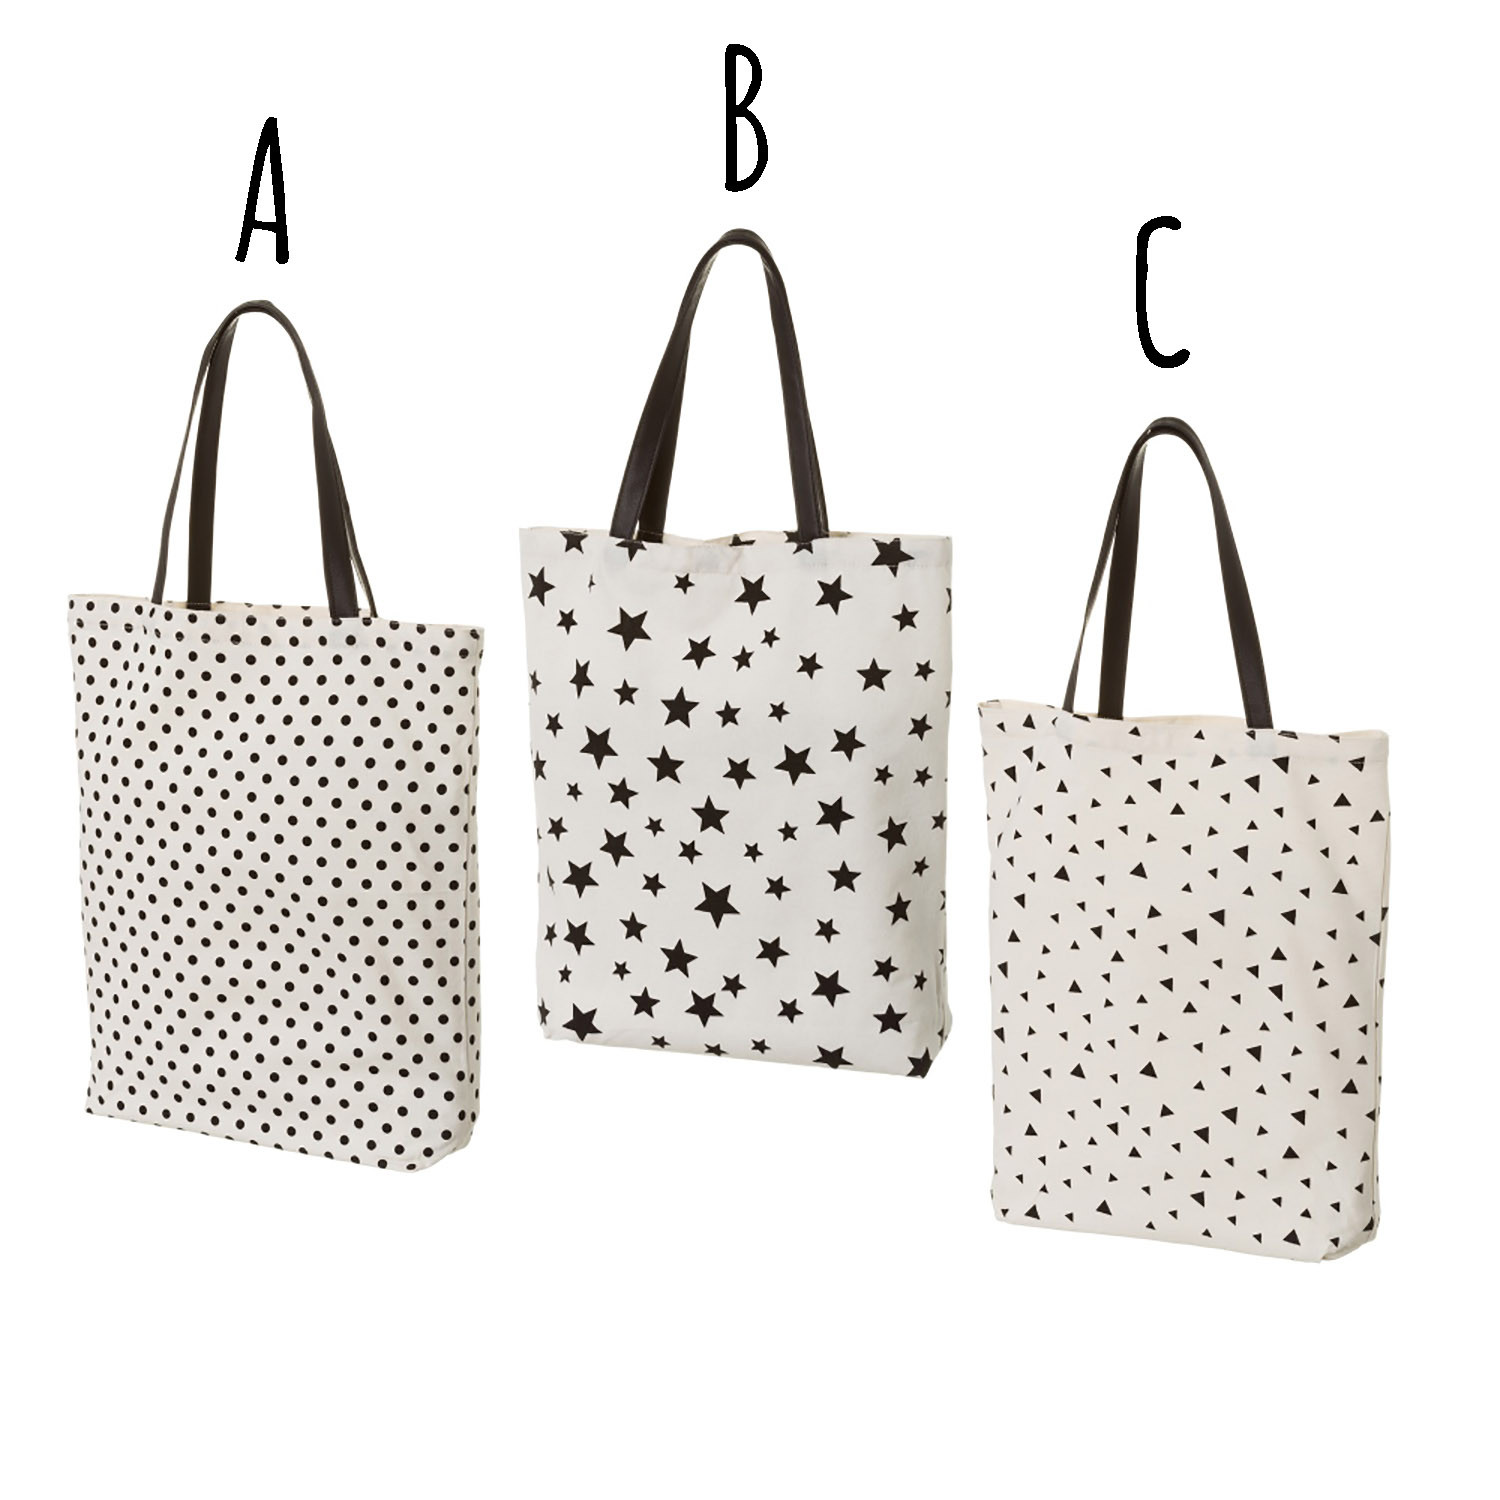 Cloth bag with carrying Handles, White and Black color. Modern design, Youthful styling (38cm X 8cm X 42cm) - Home and More